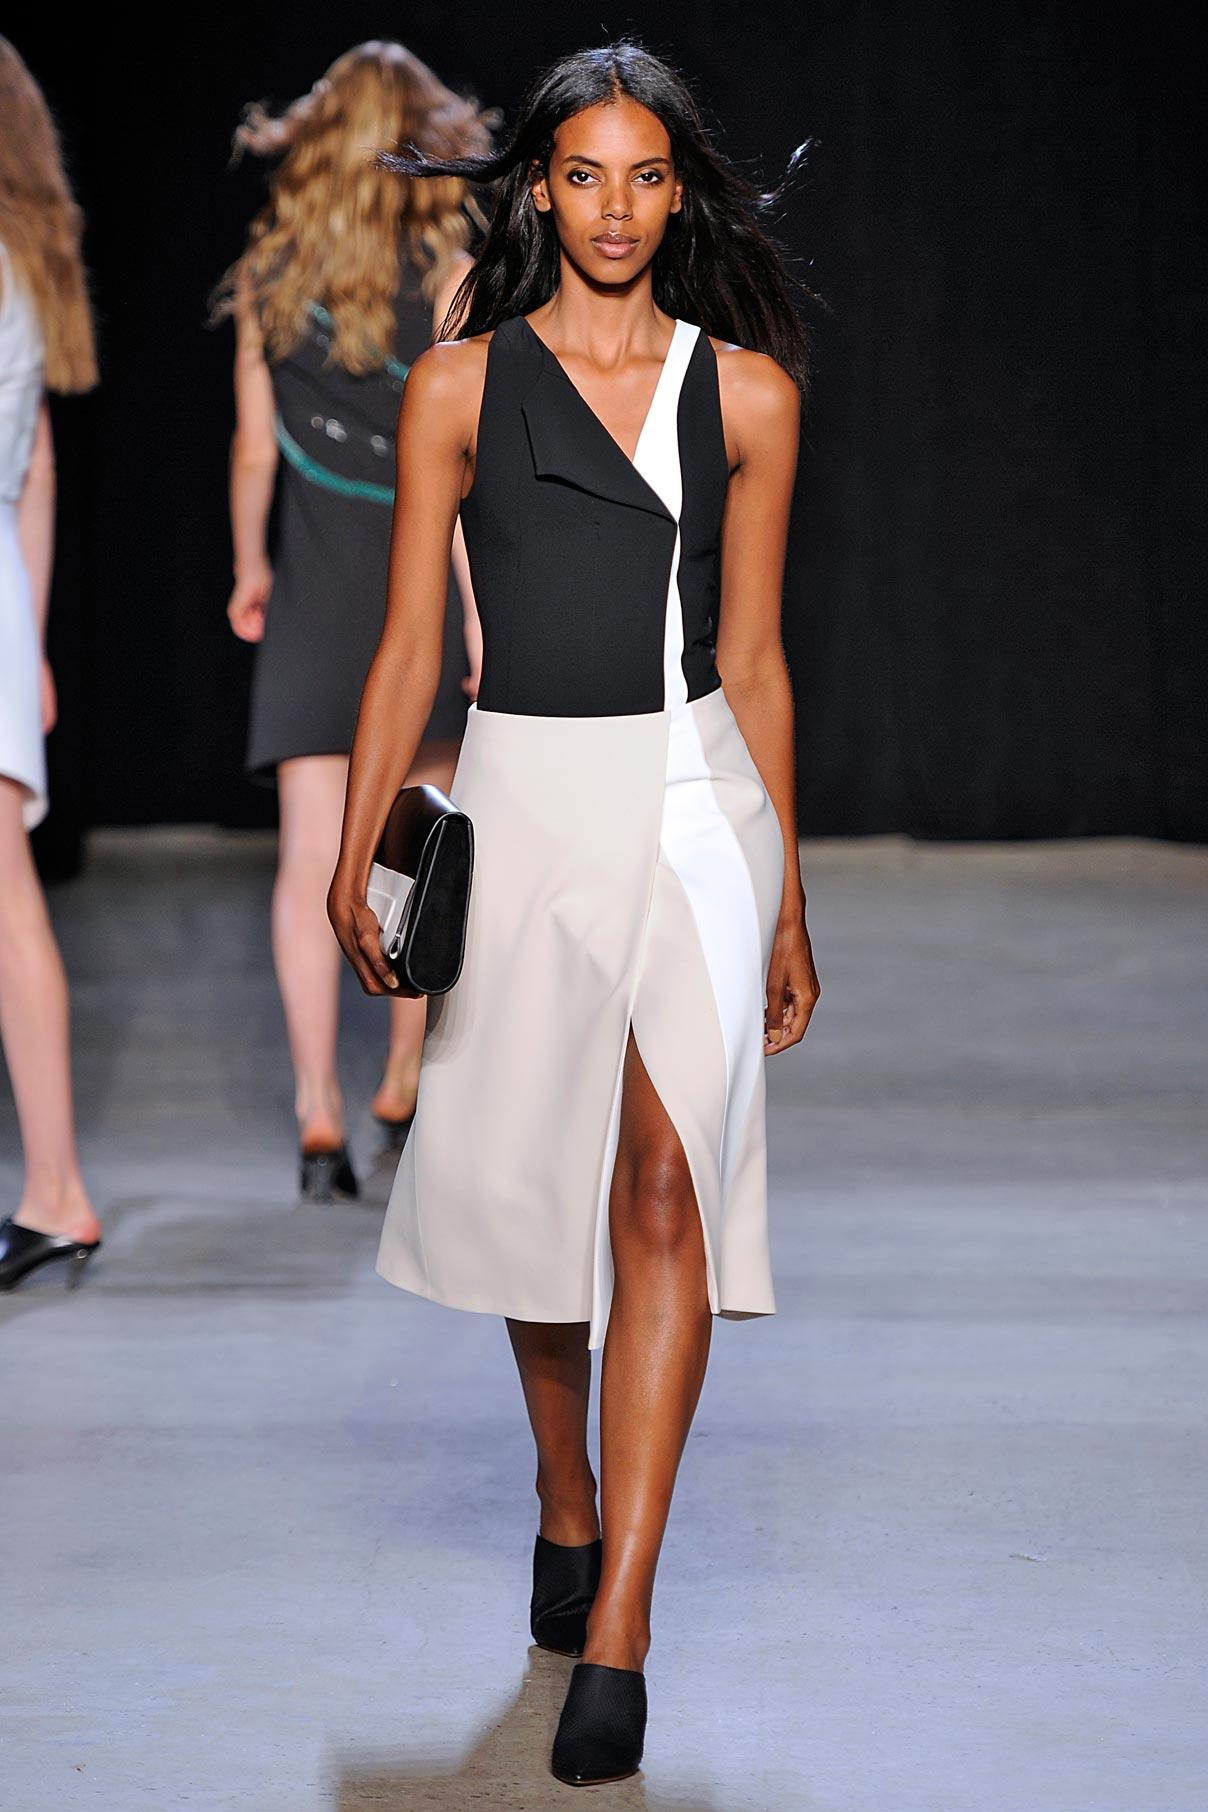 Look 16 Black scuba top with stone/white skirt.